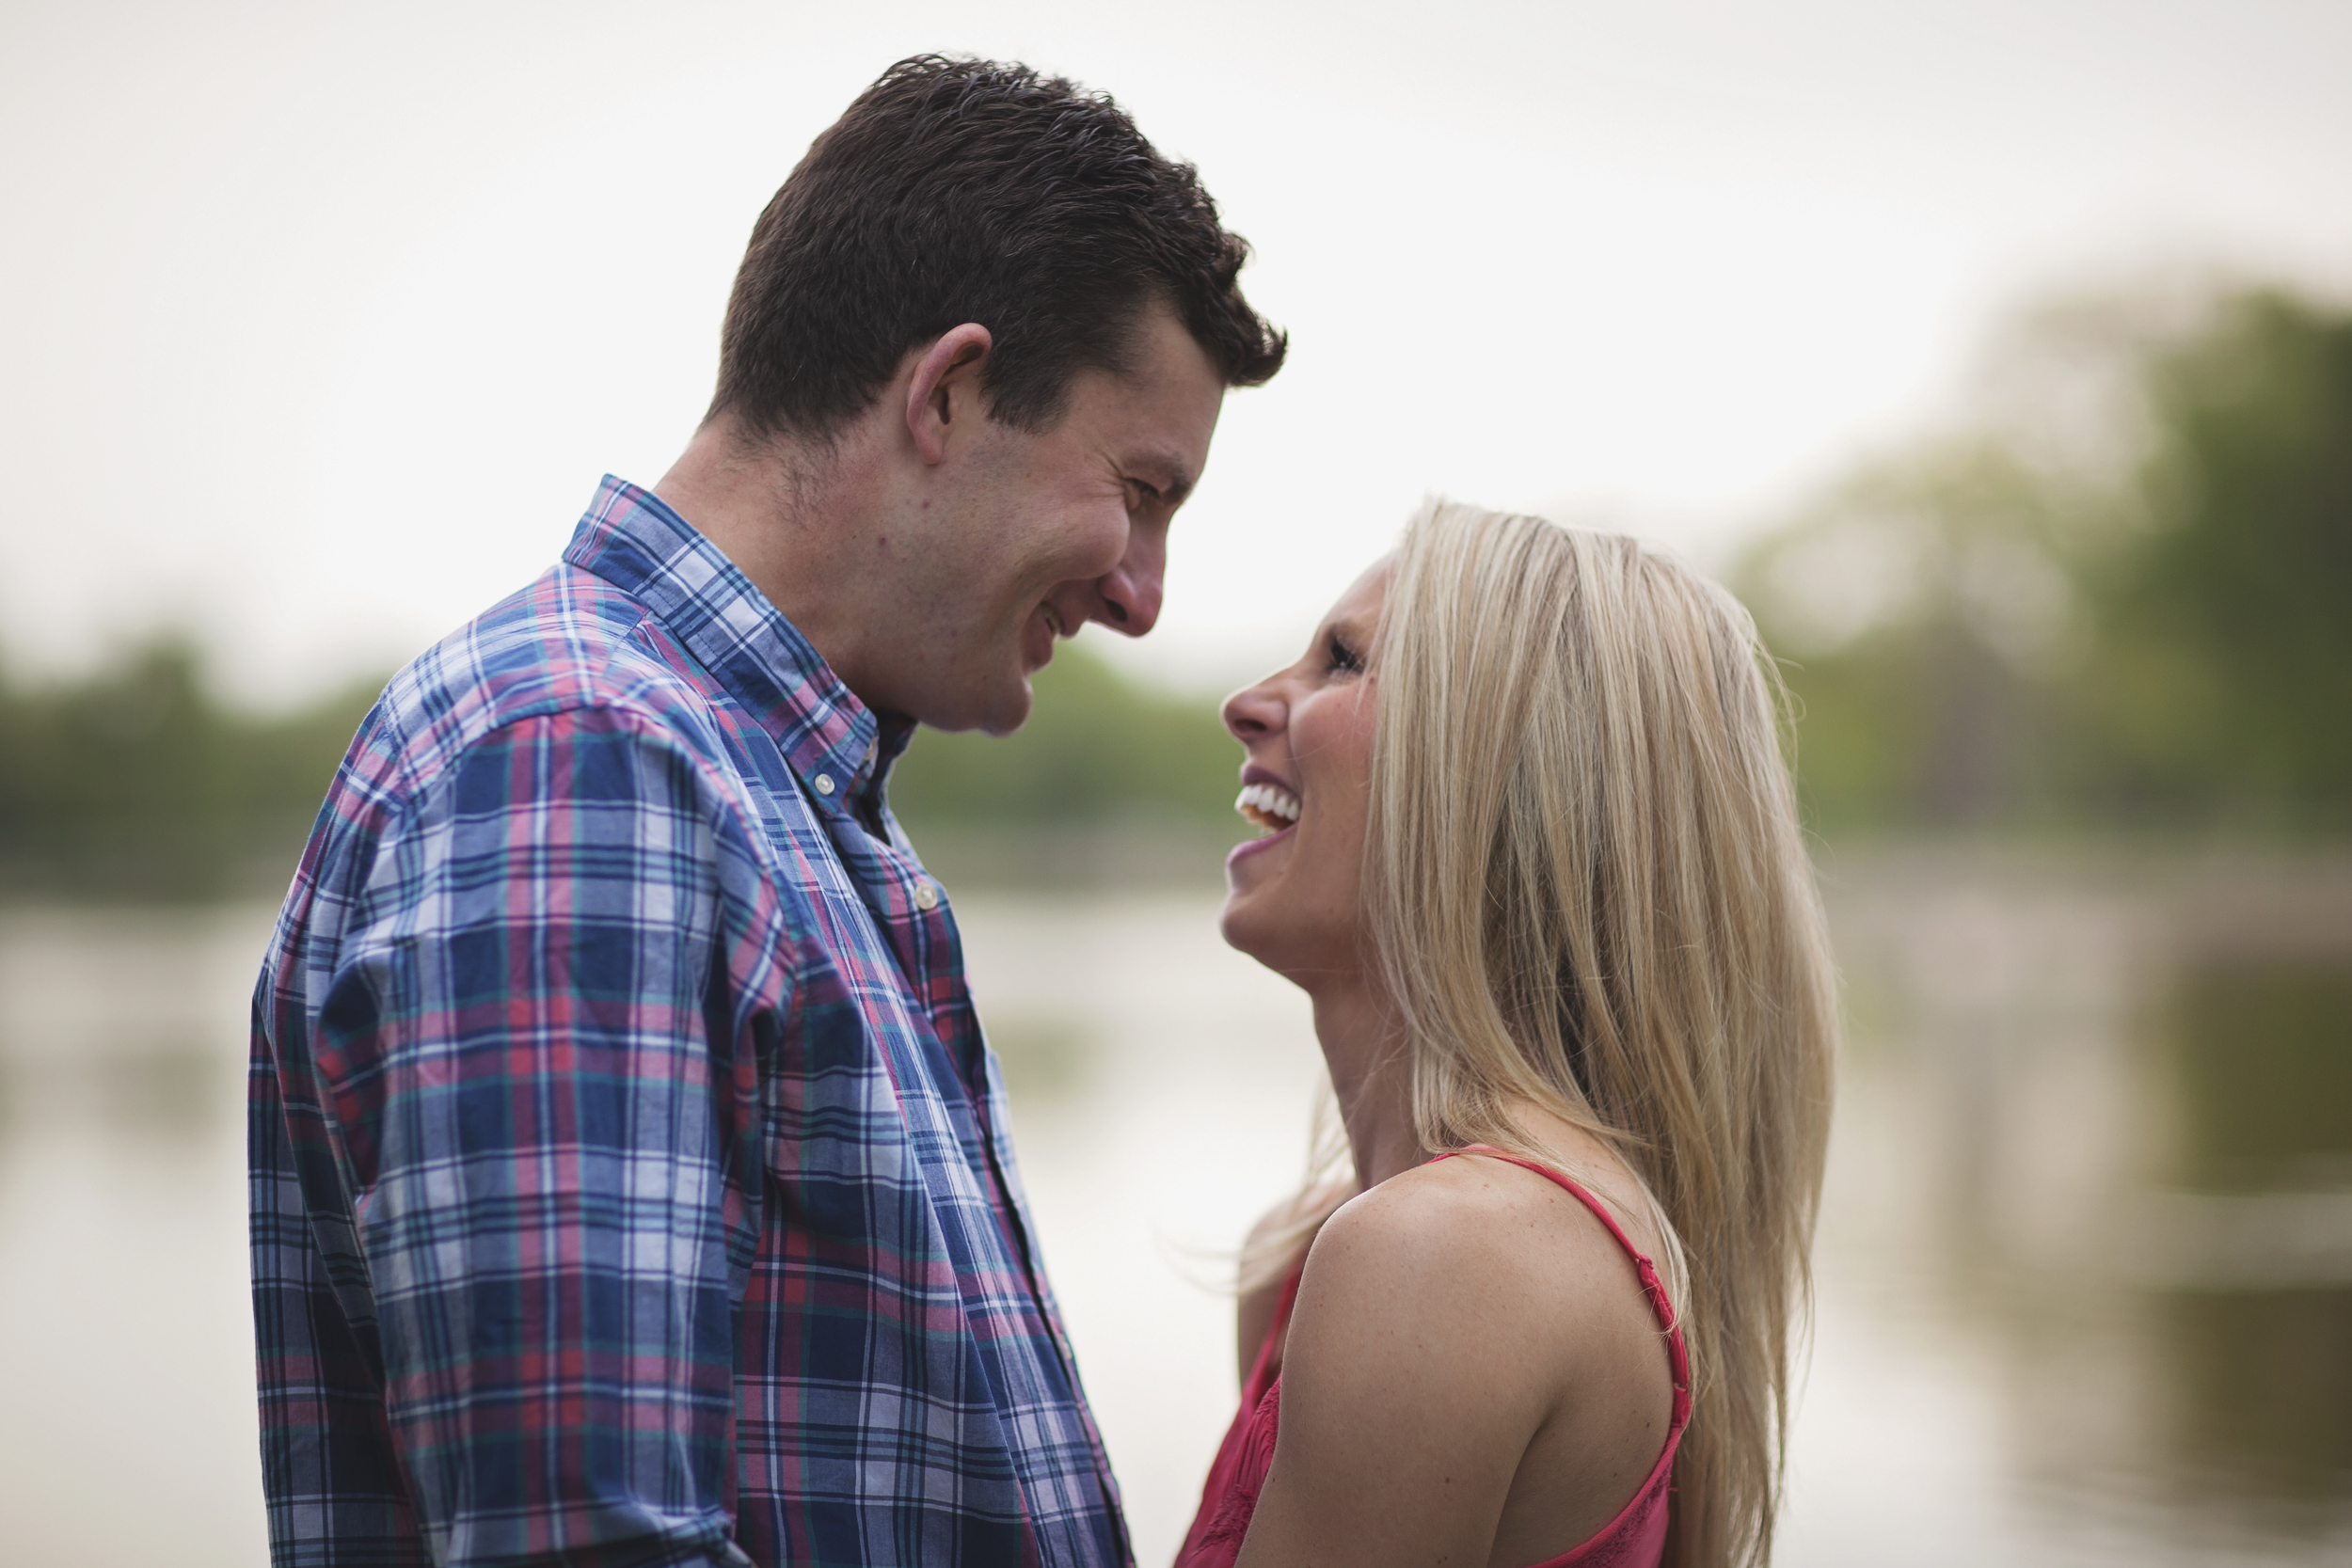 Engaged couple laughing in portrait with trees and lake blurred in background